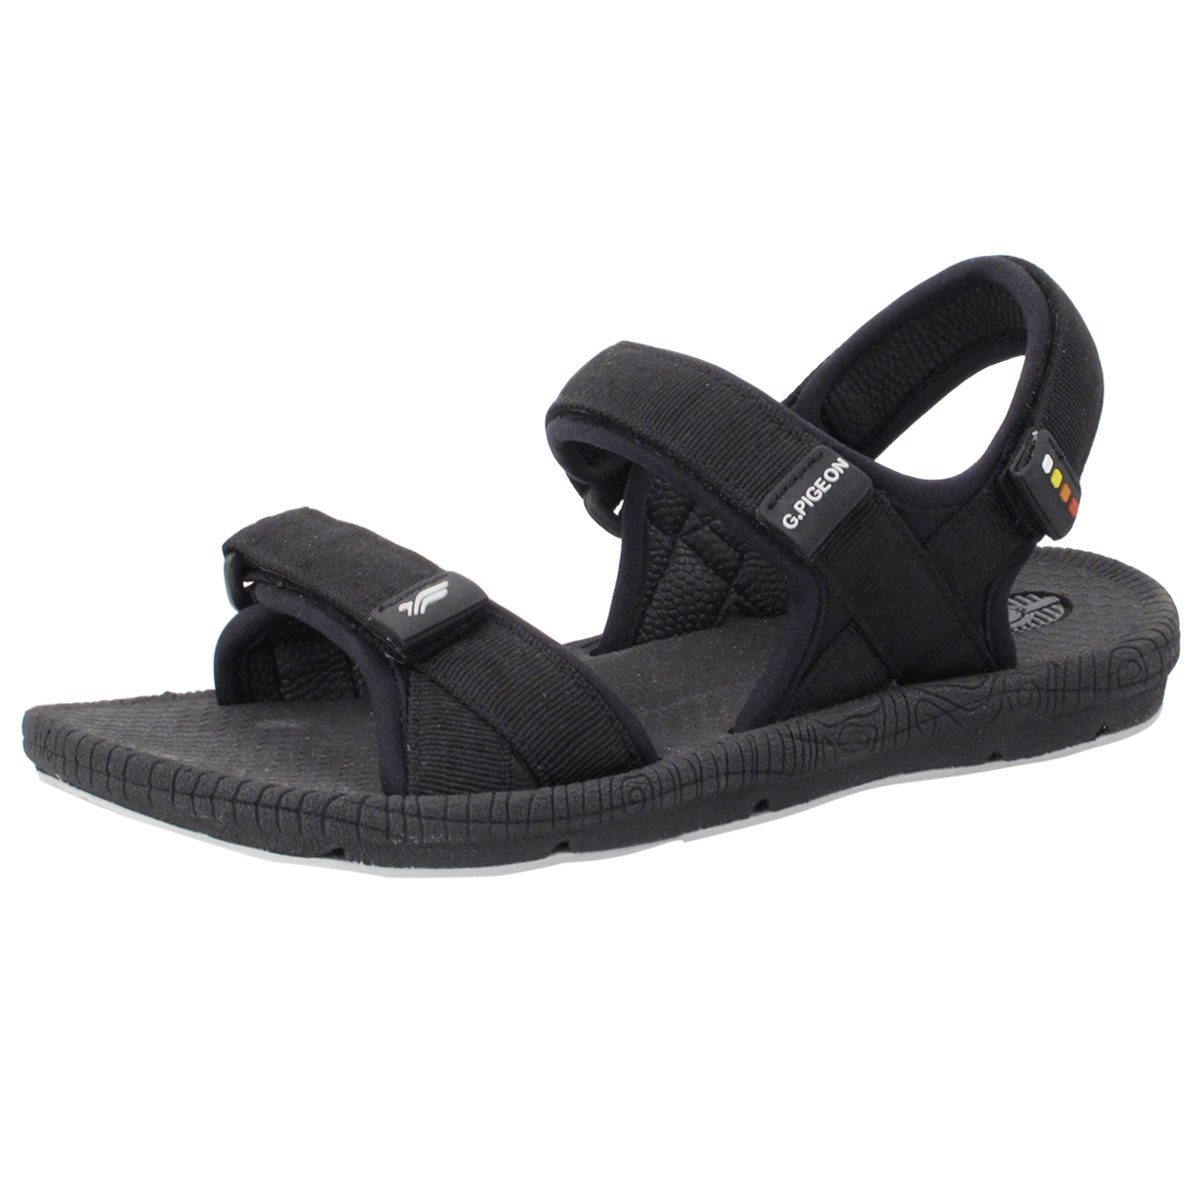 Gold Pigeon Shoes GP5931 Light Sling Weight Adjustable Outdoor Water Sling Light Back Sandals for Men & Women B078M8YNJL EU41: Women 10/10.5 & Men 8.5/9 (272.6mm)|8658 Black With Snap Lock (Prime Free Shipping) 712450